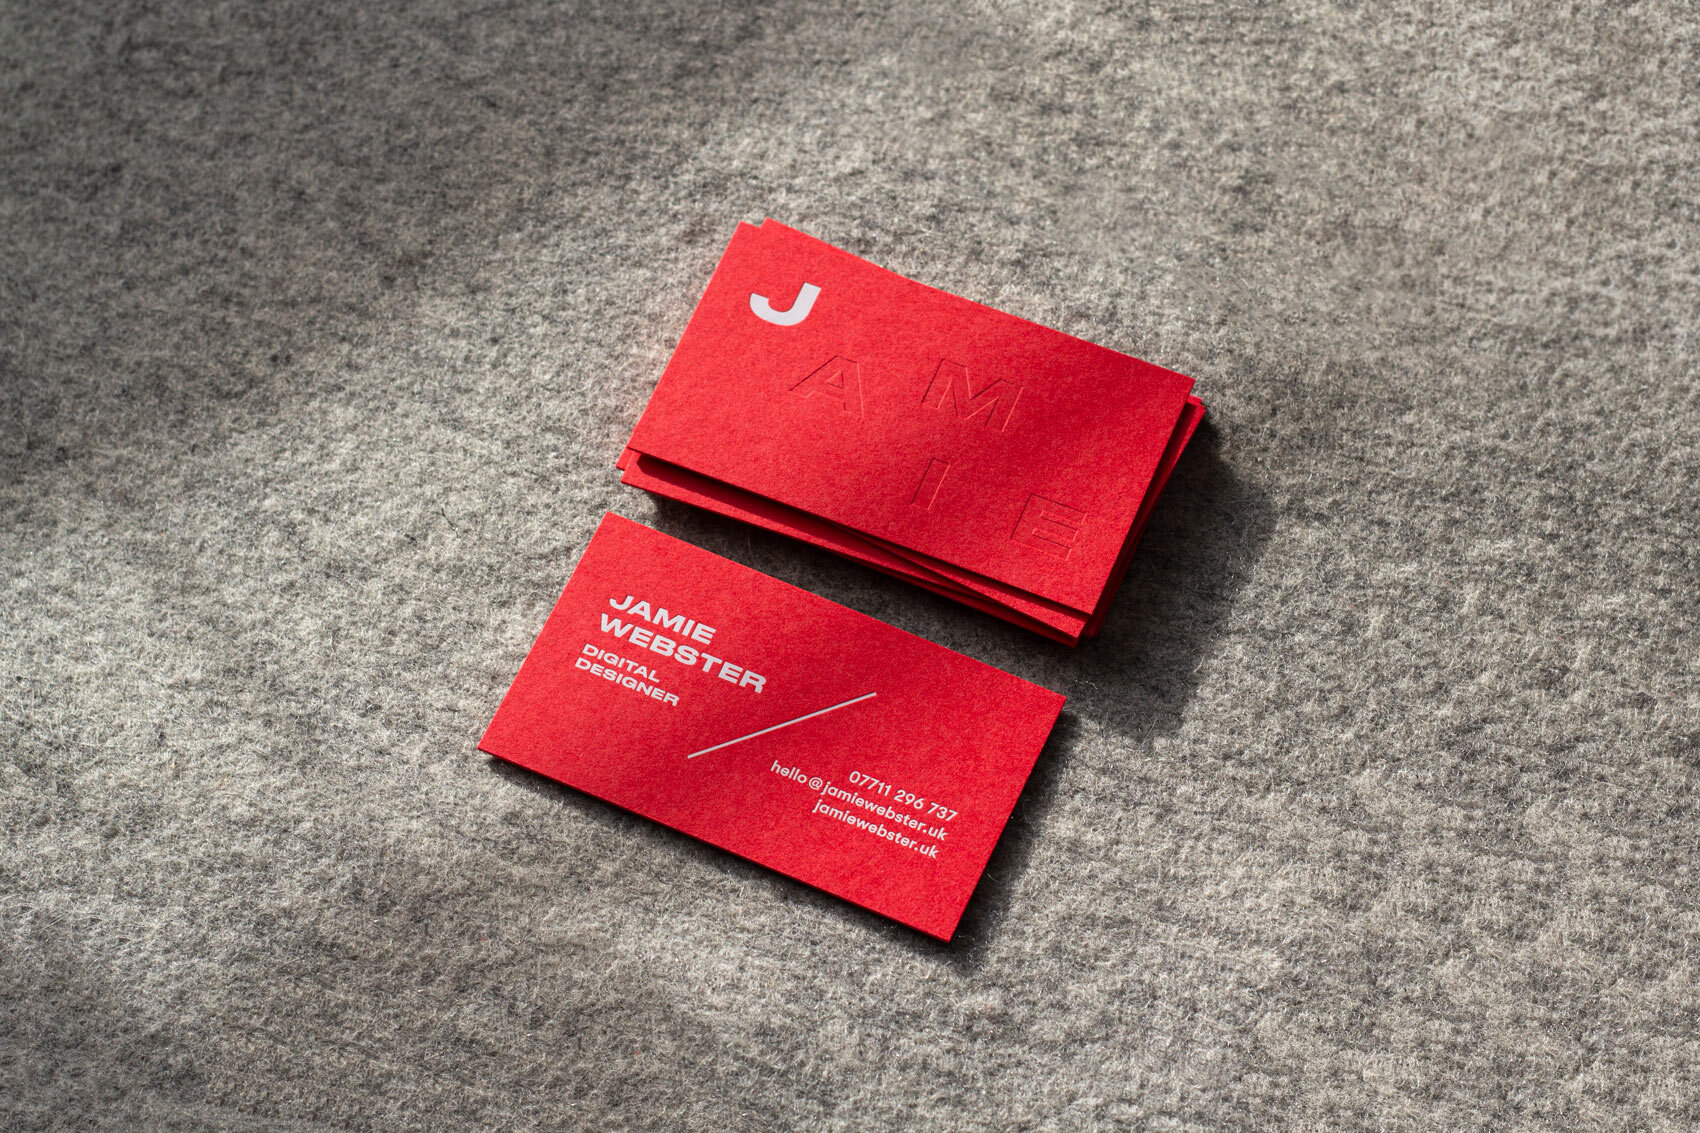 Jamie Webster Business Cards - Jot Paper Co